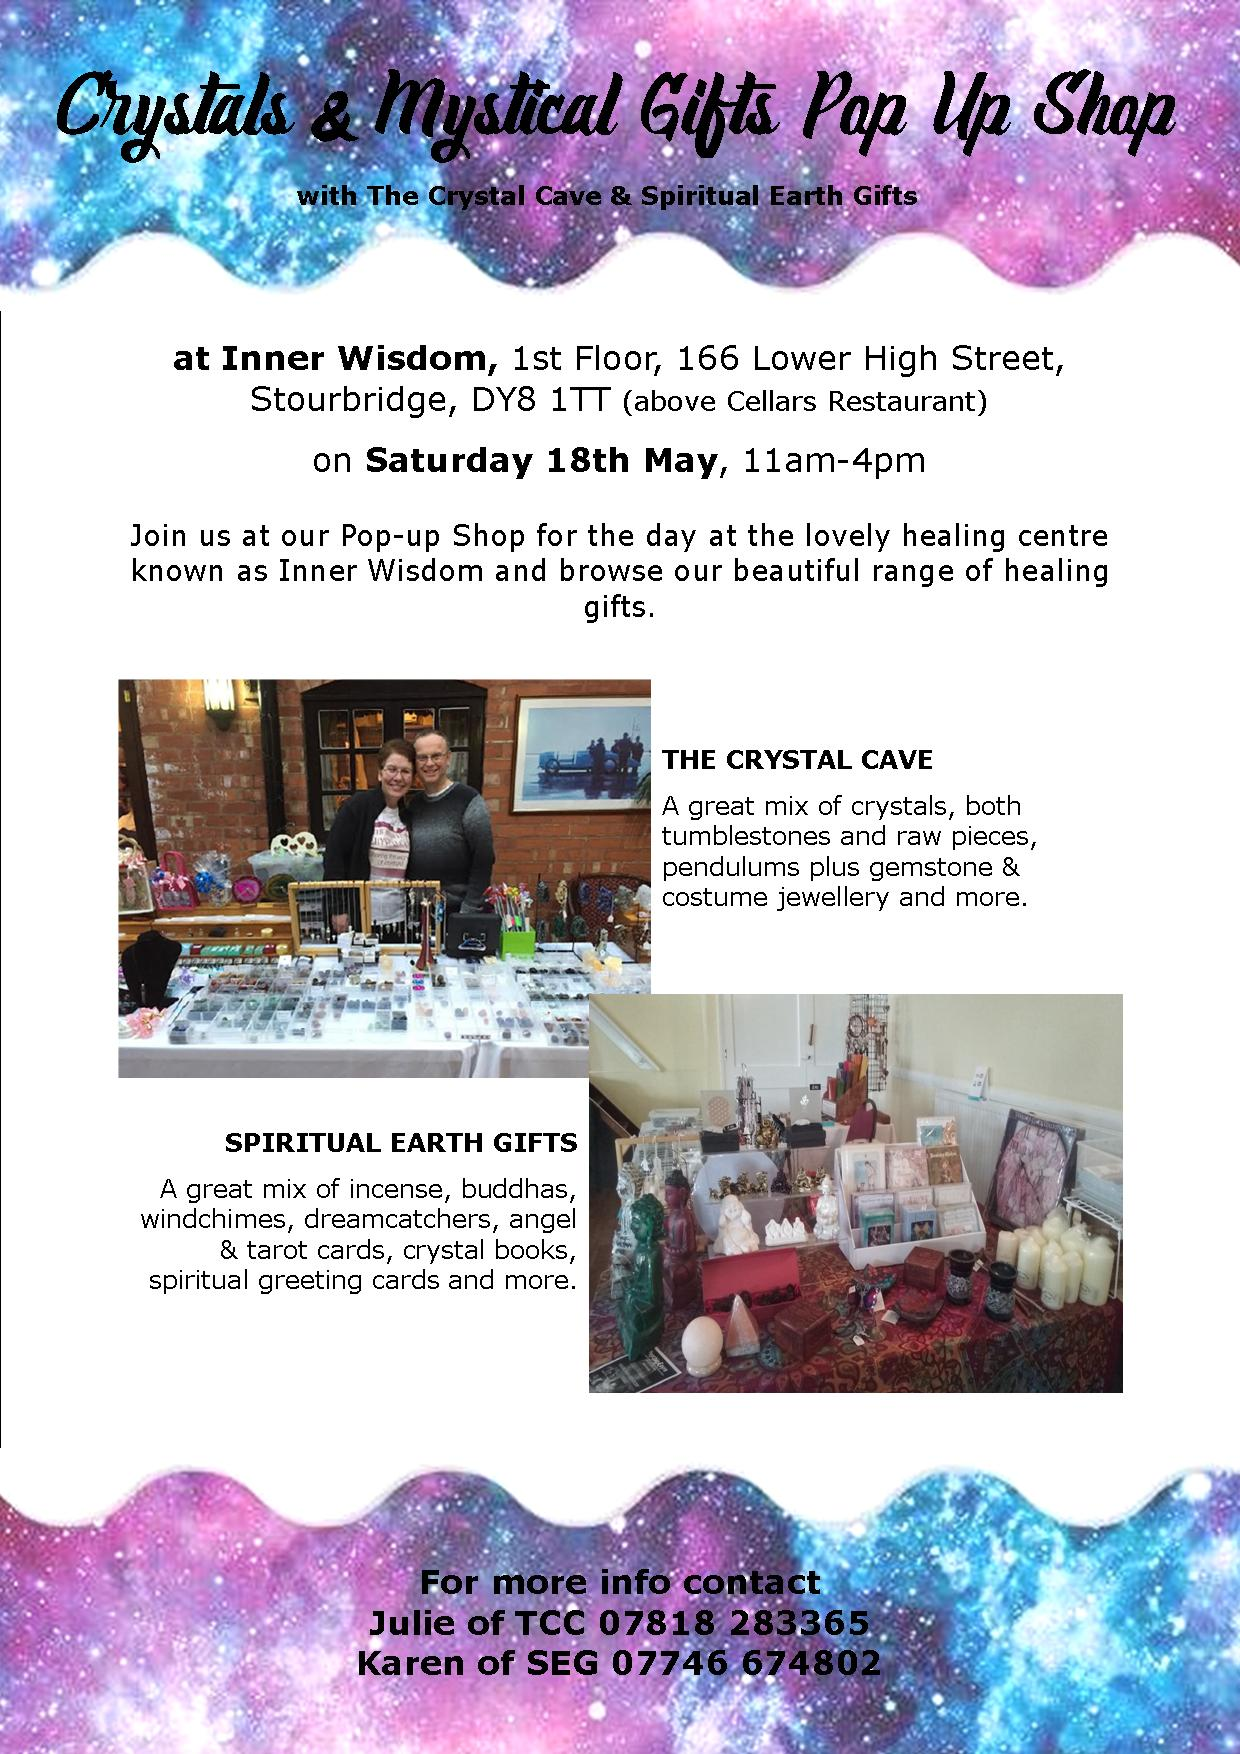 Crystals & Mystical Gifts Pop Up Shop on 18th May